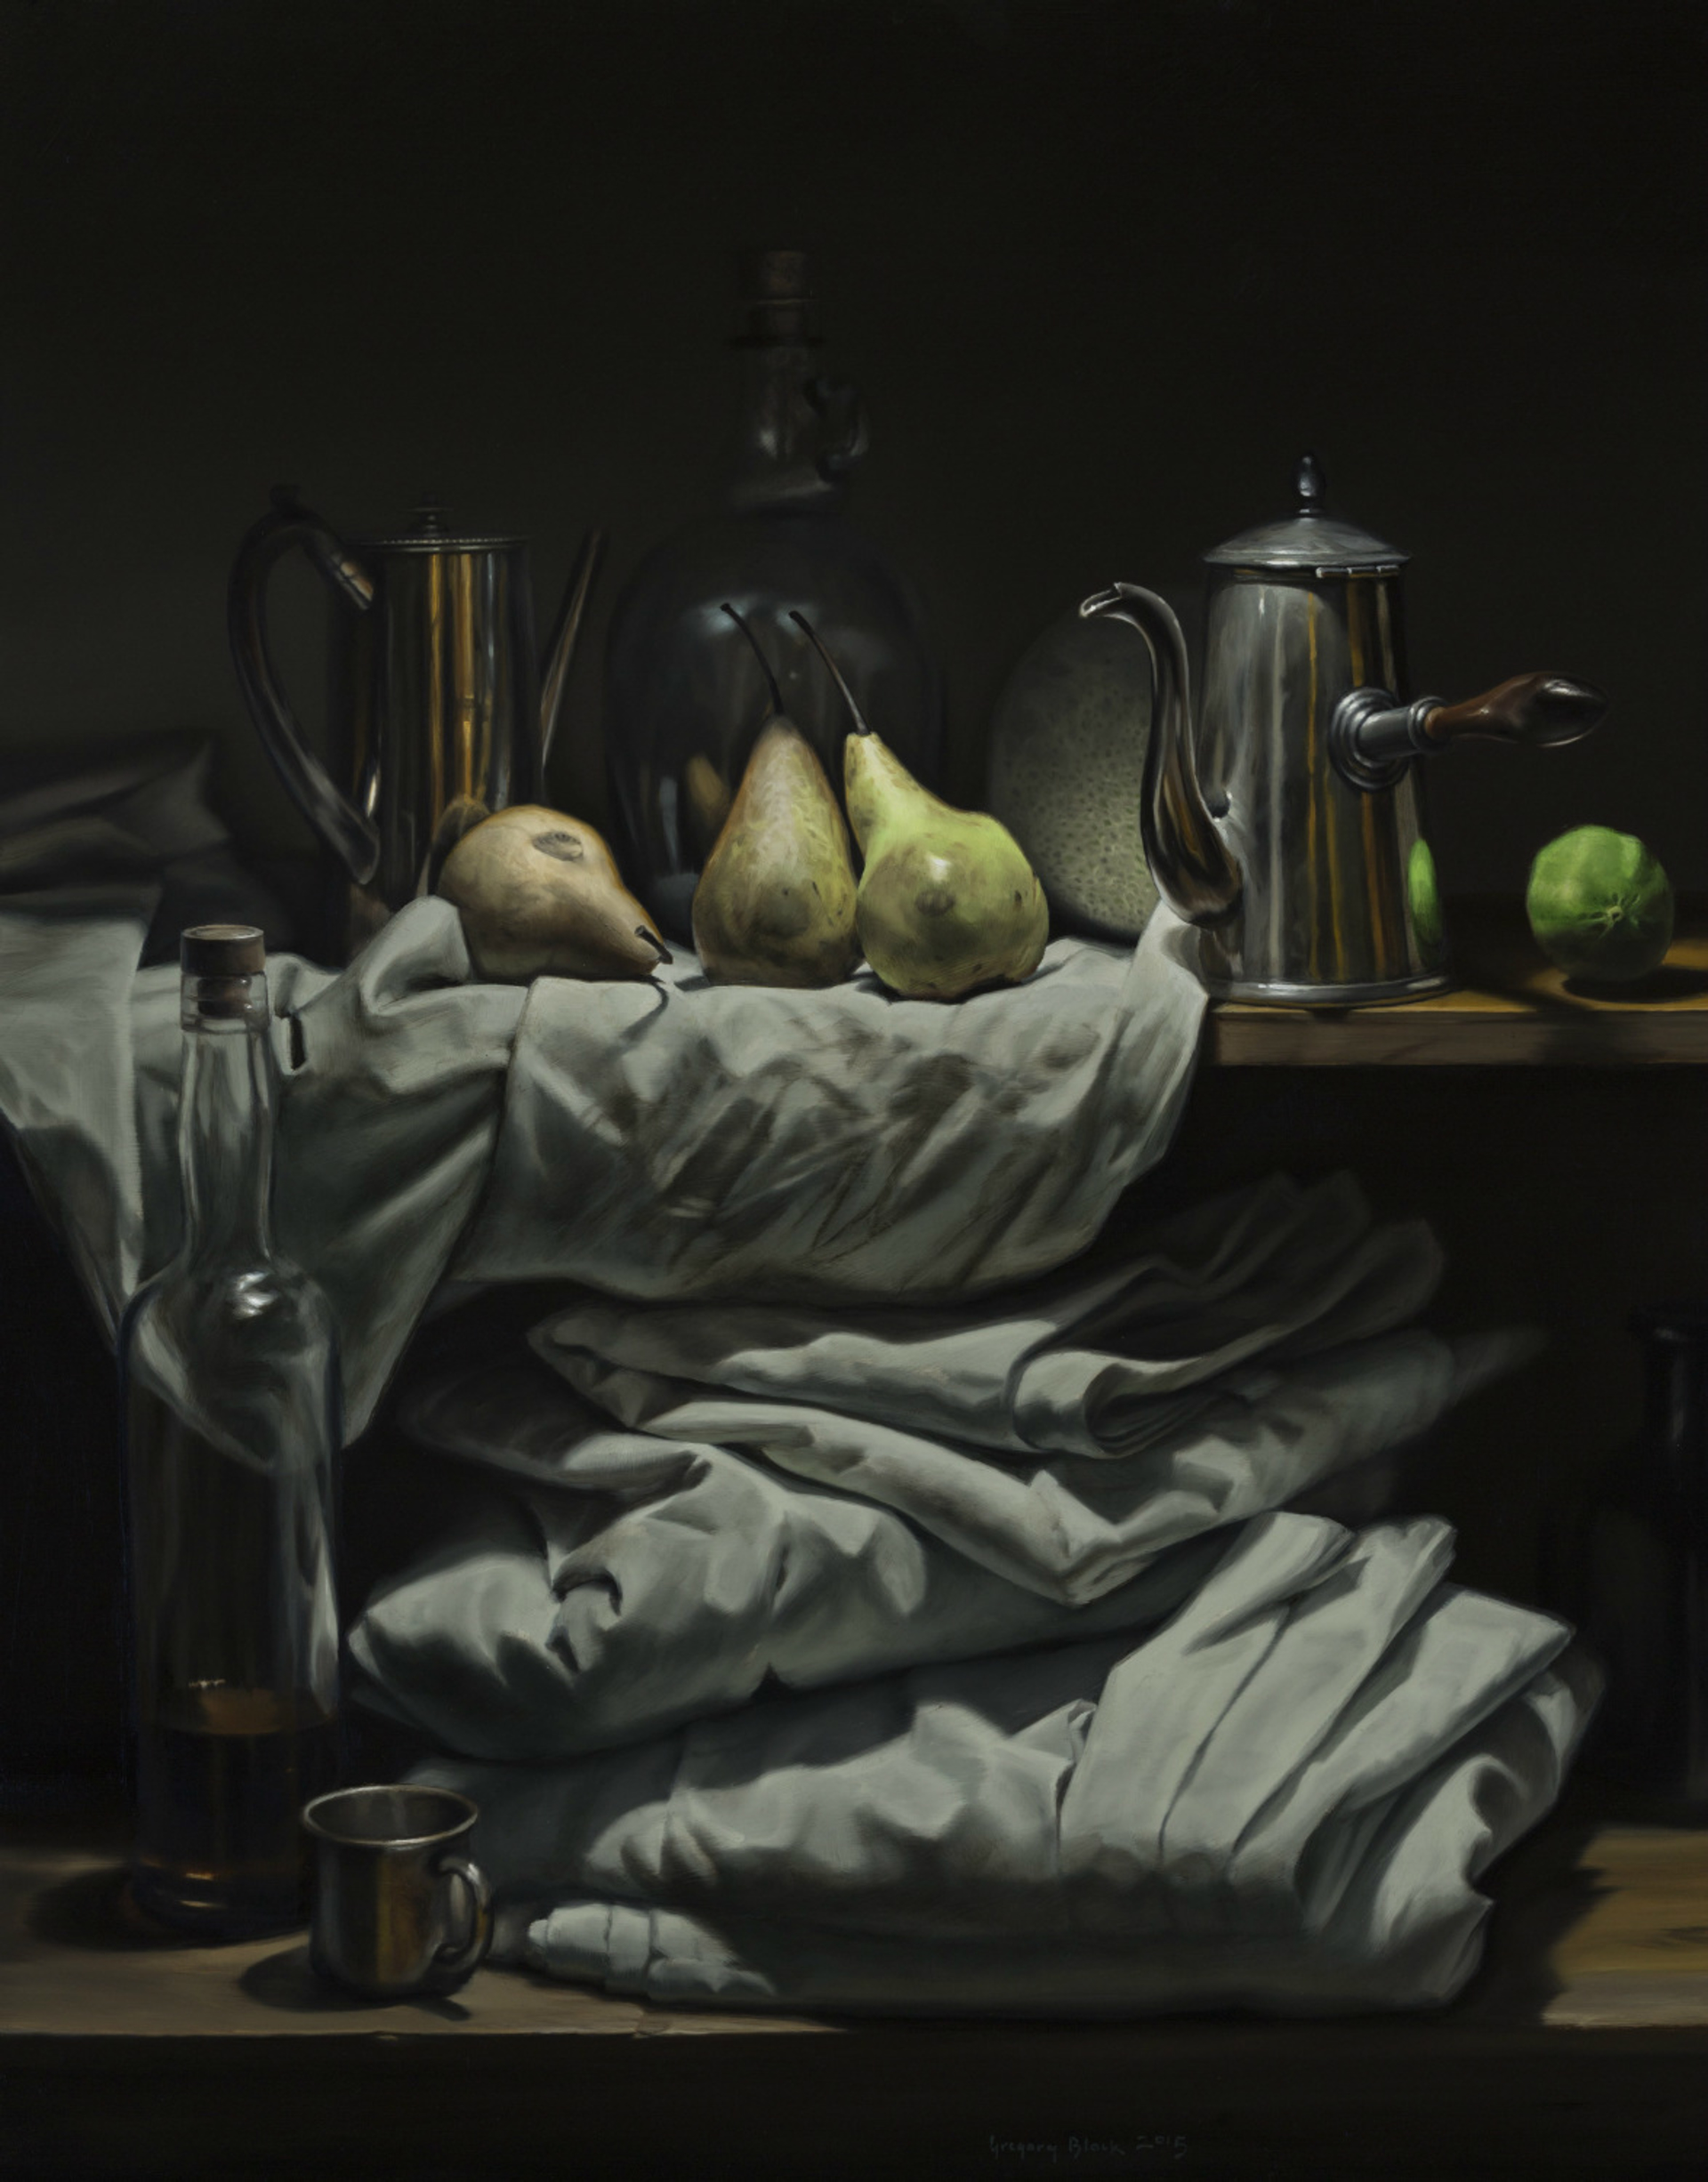 Three Pears by Gregory Block